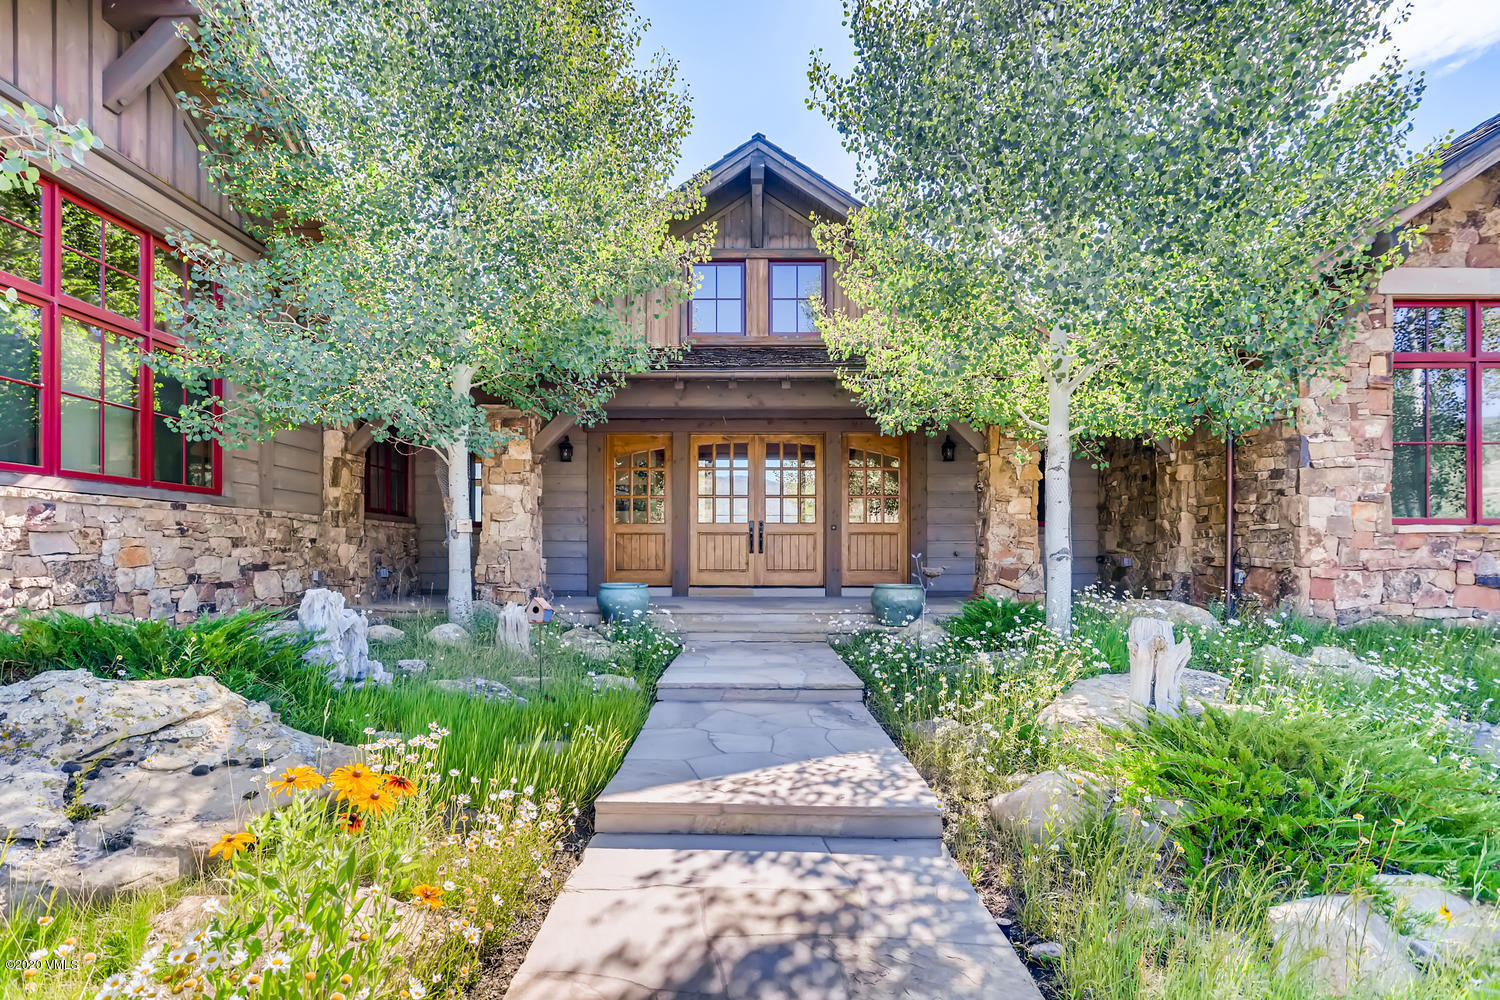 Inspired by the Austrian Alps, with views of the Rocky Mountains, this sun-drenched custom home features rustic, hand-hewn Oregon fir beams, European oak flooring, and a central kitchen with artistically distressed cabinetry and a Bavarian-inspired nook. This downsizer's dream is located in the exclusive community of Red Sky Ranch and also includes single floor living, vaulted ceilings, open great room/kitchen, lockoff, covered patio with outdoor fireplace, and ski slope views of Beaver Creek.